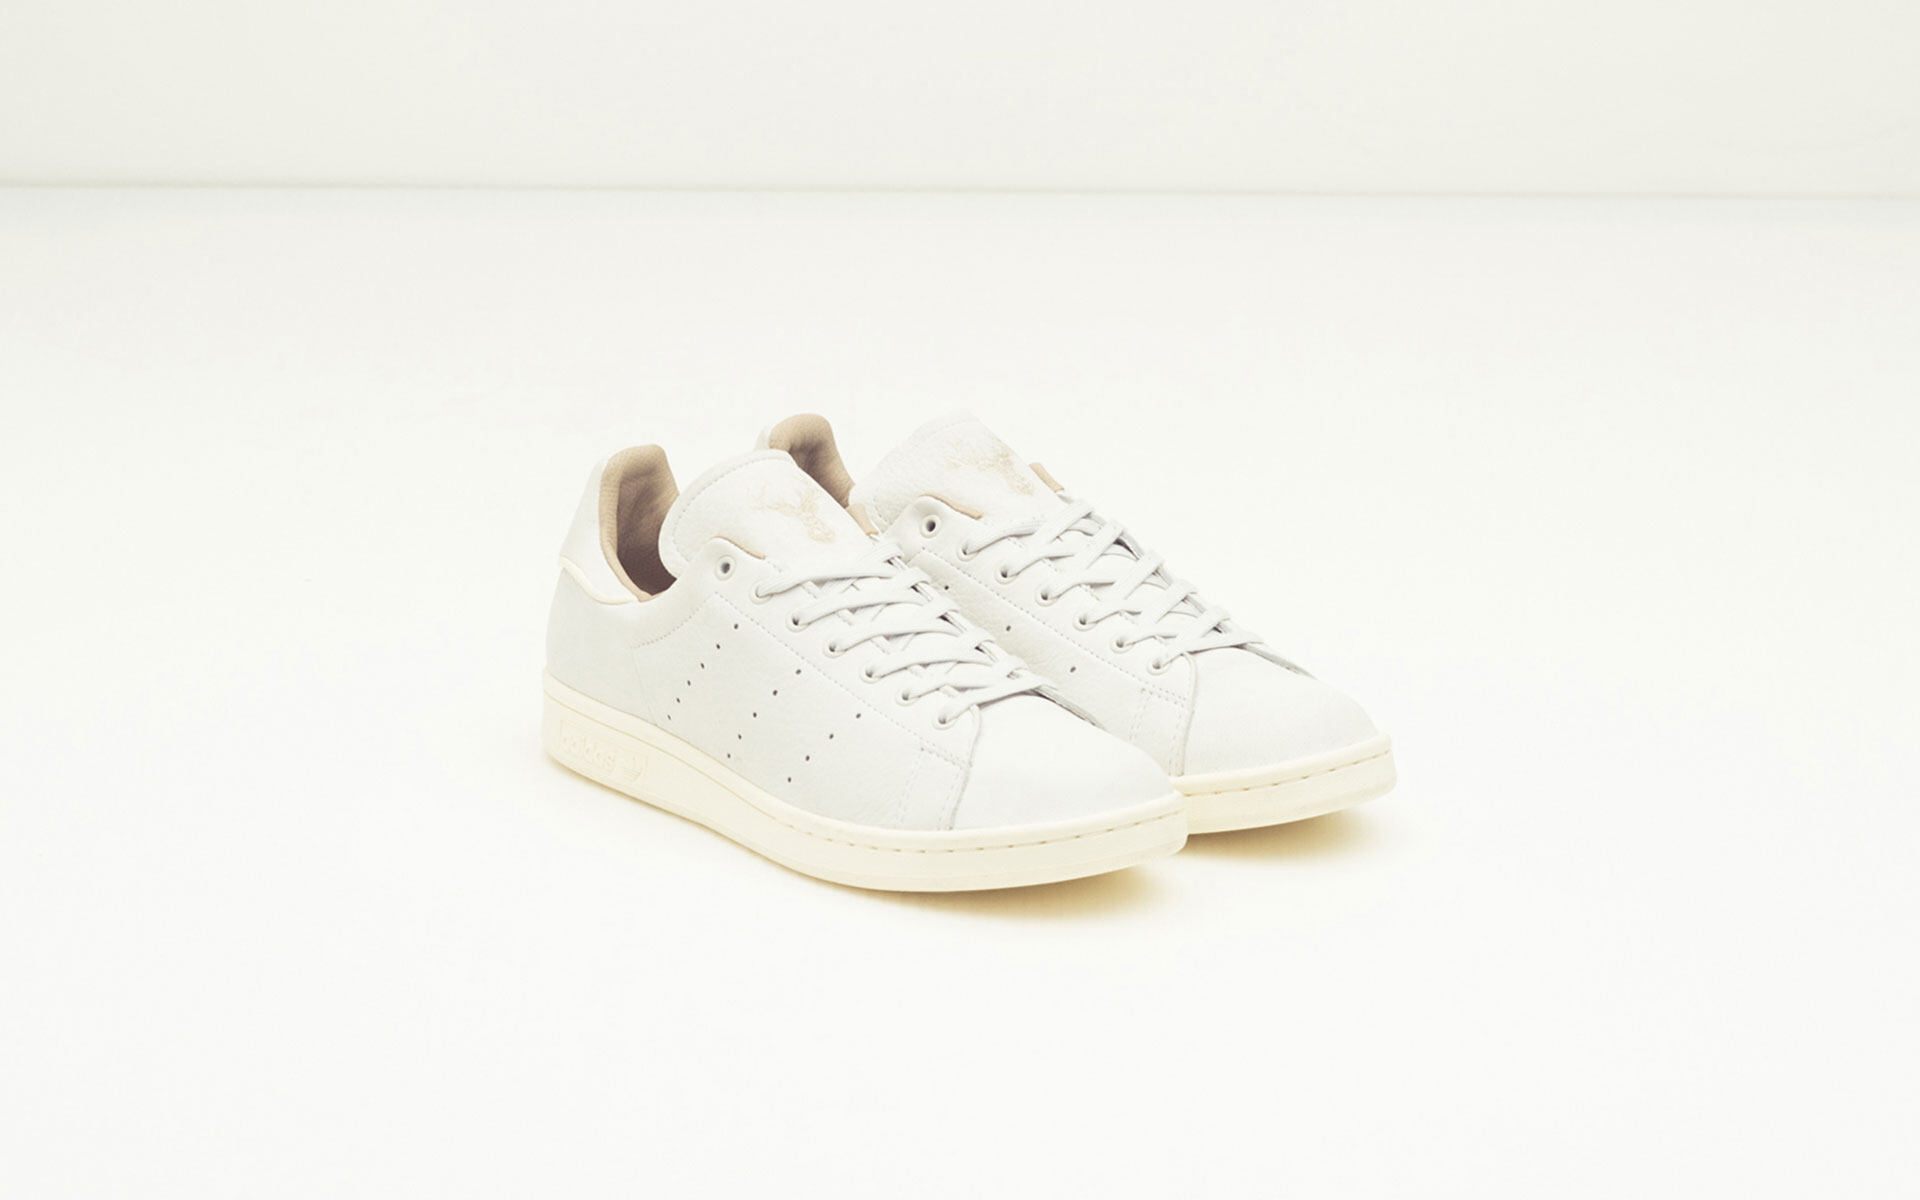 adidas Originals Made in Germany系列, ZX500, Stan Smith